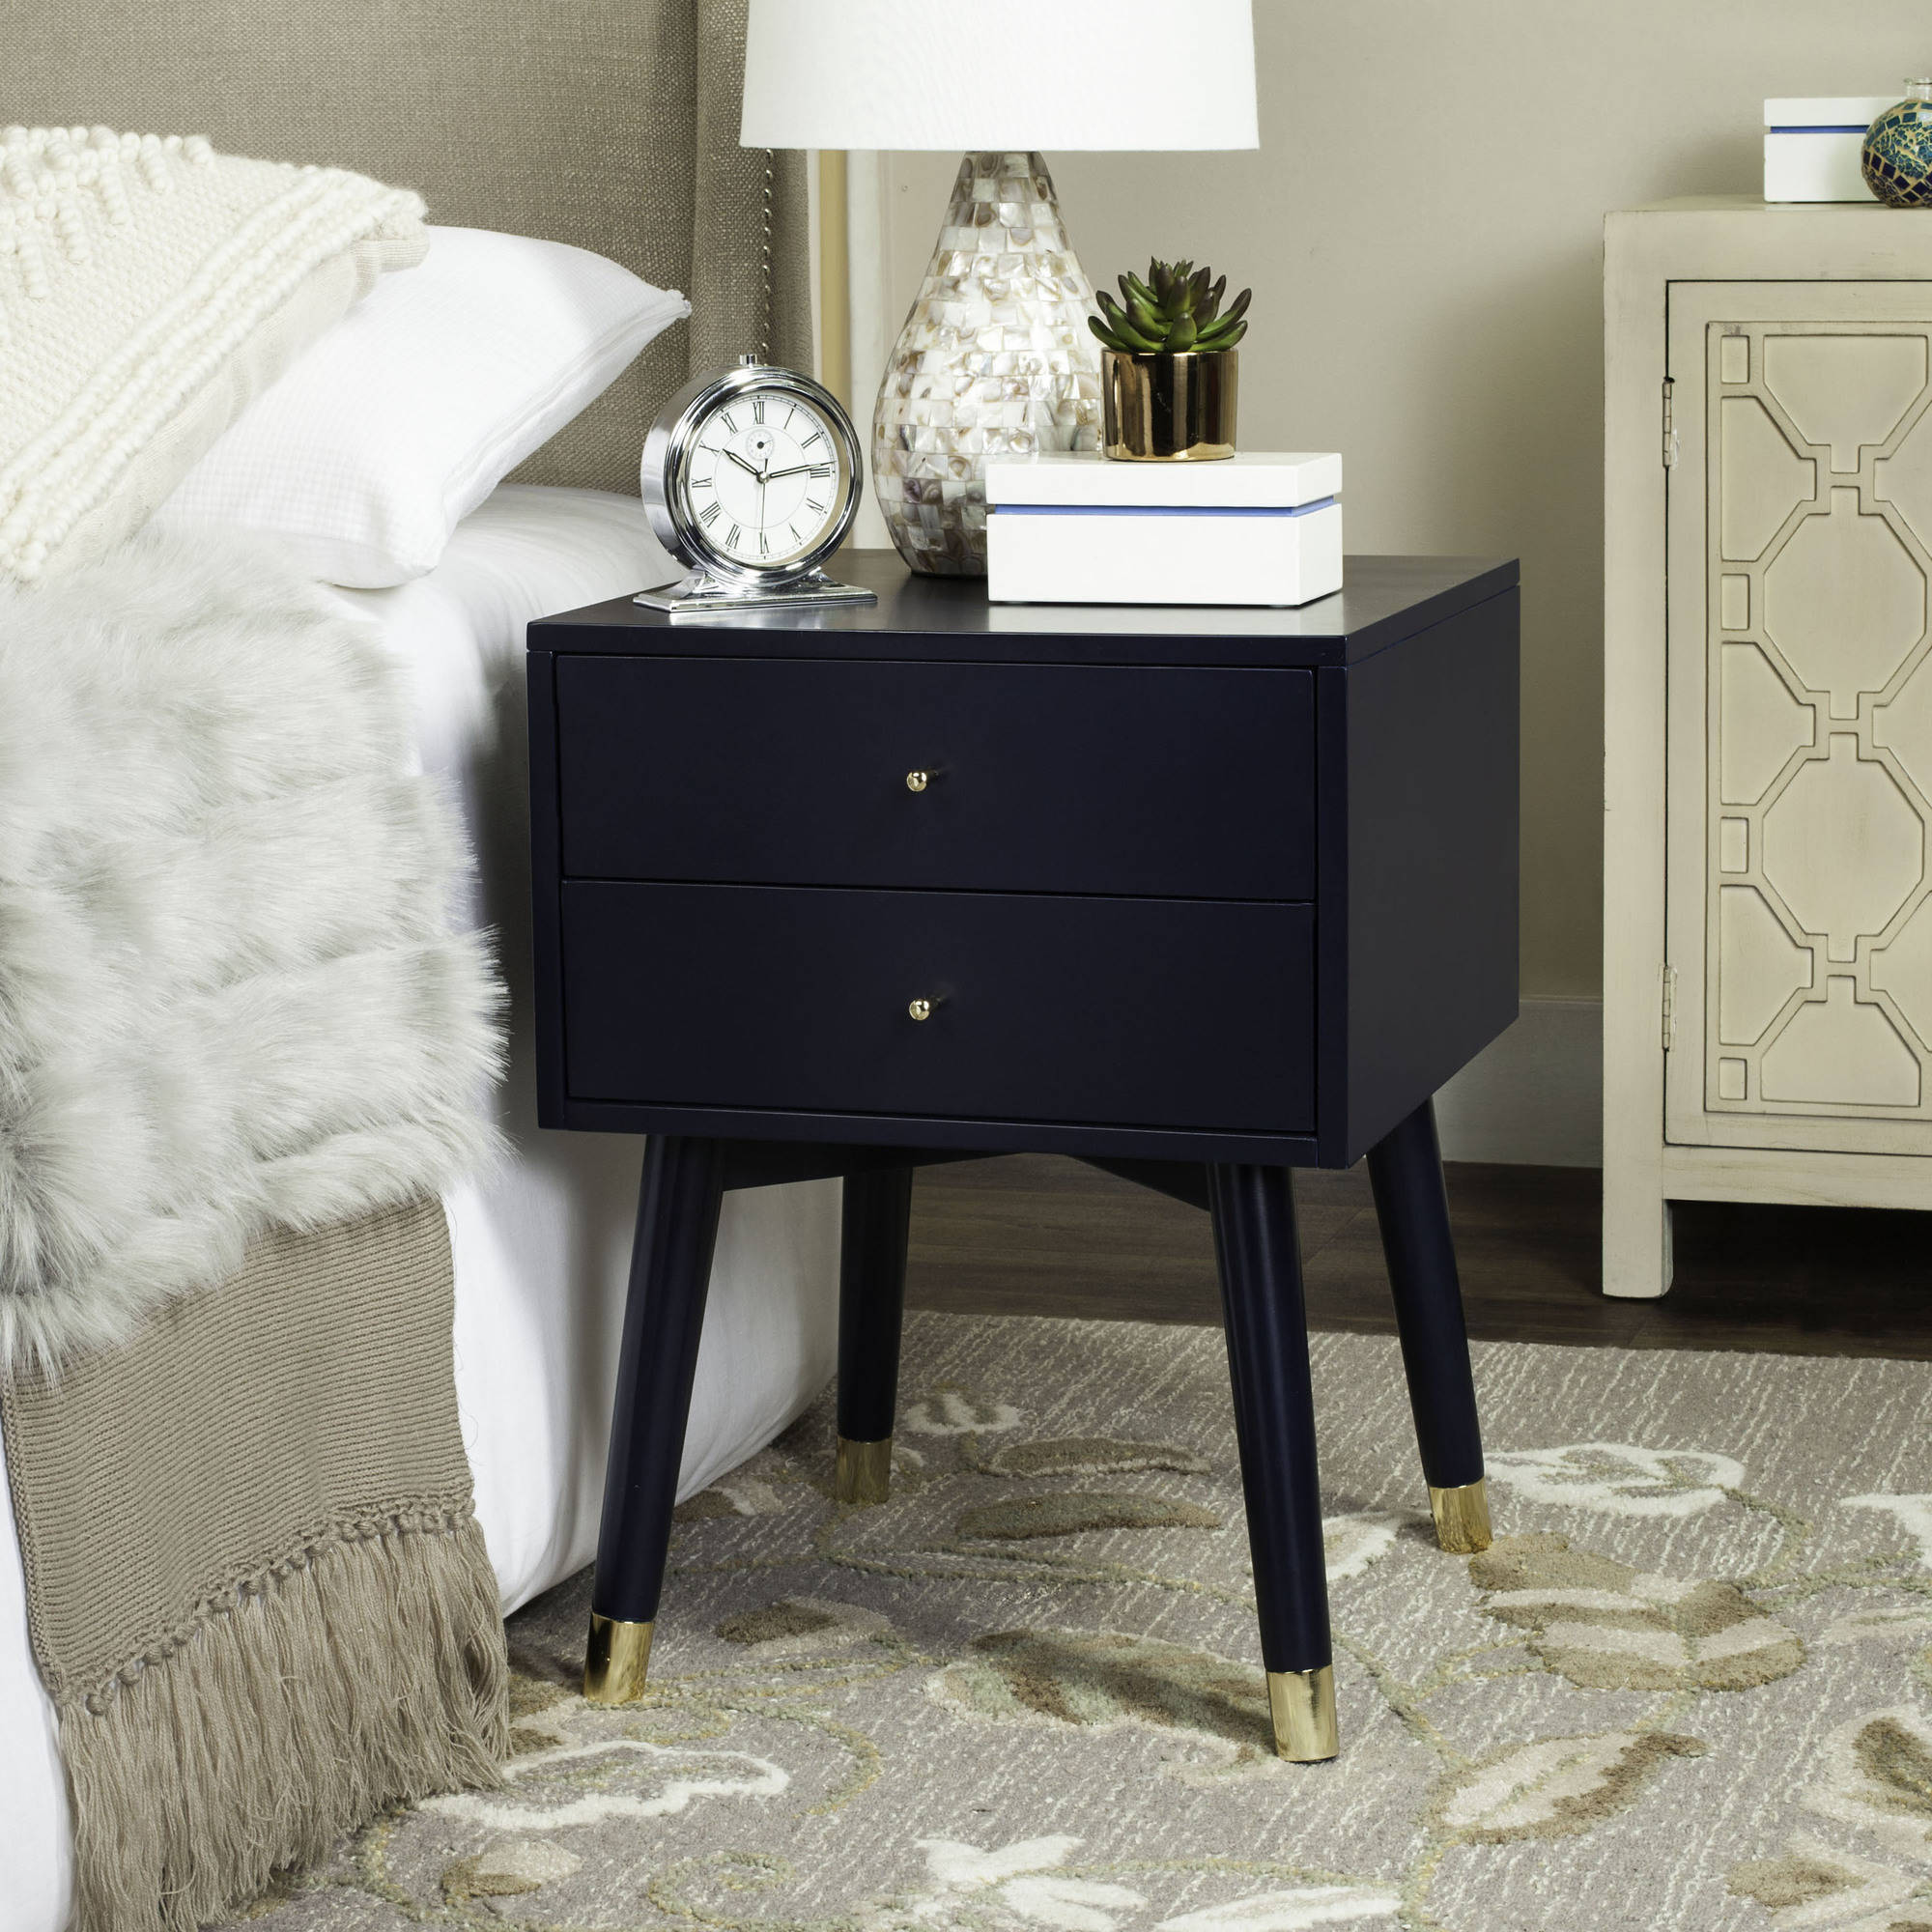 Safavieh Lyla Mid Centry Retro 2-Drawer Nightstand, Multiple Colors